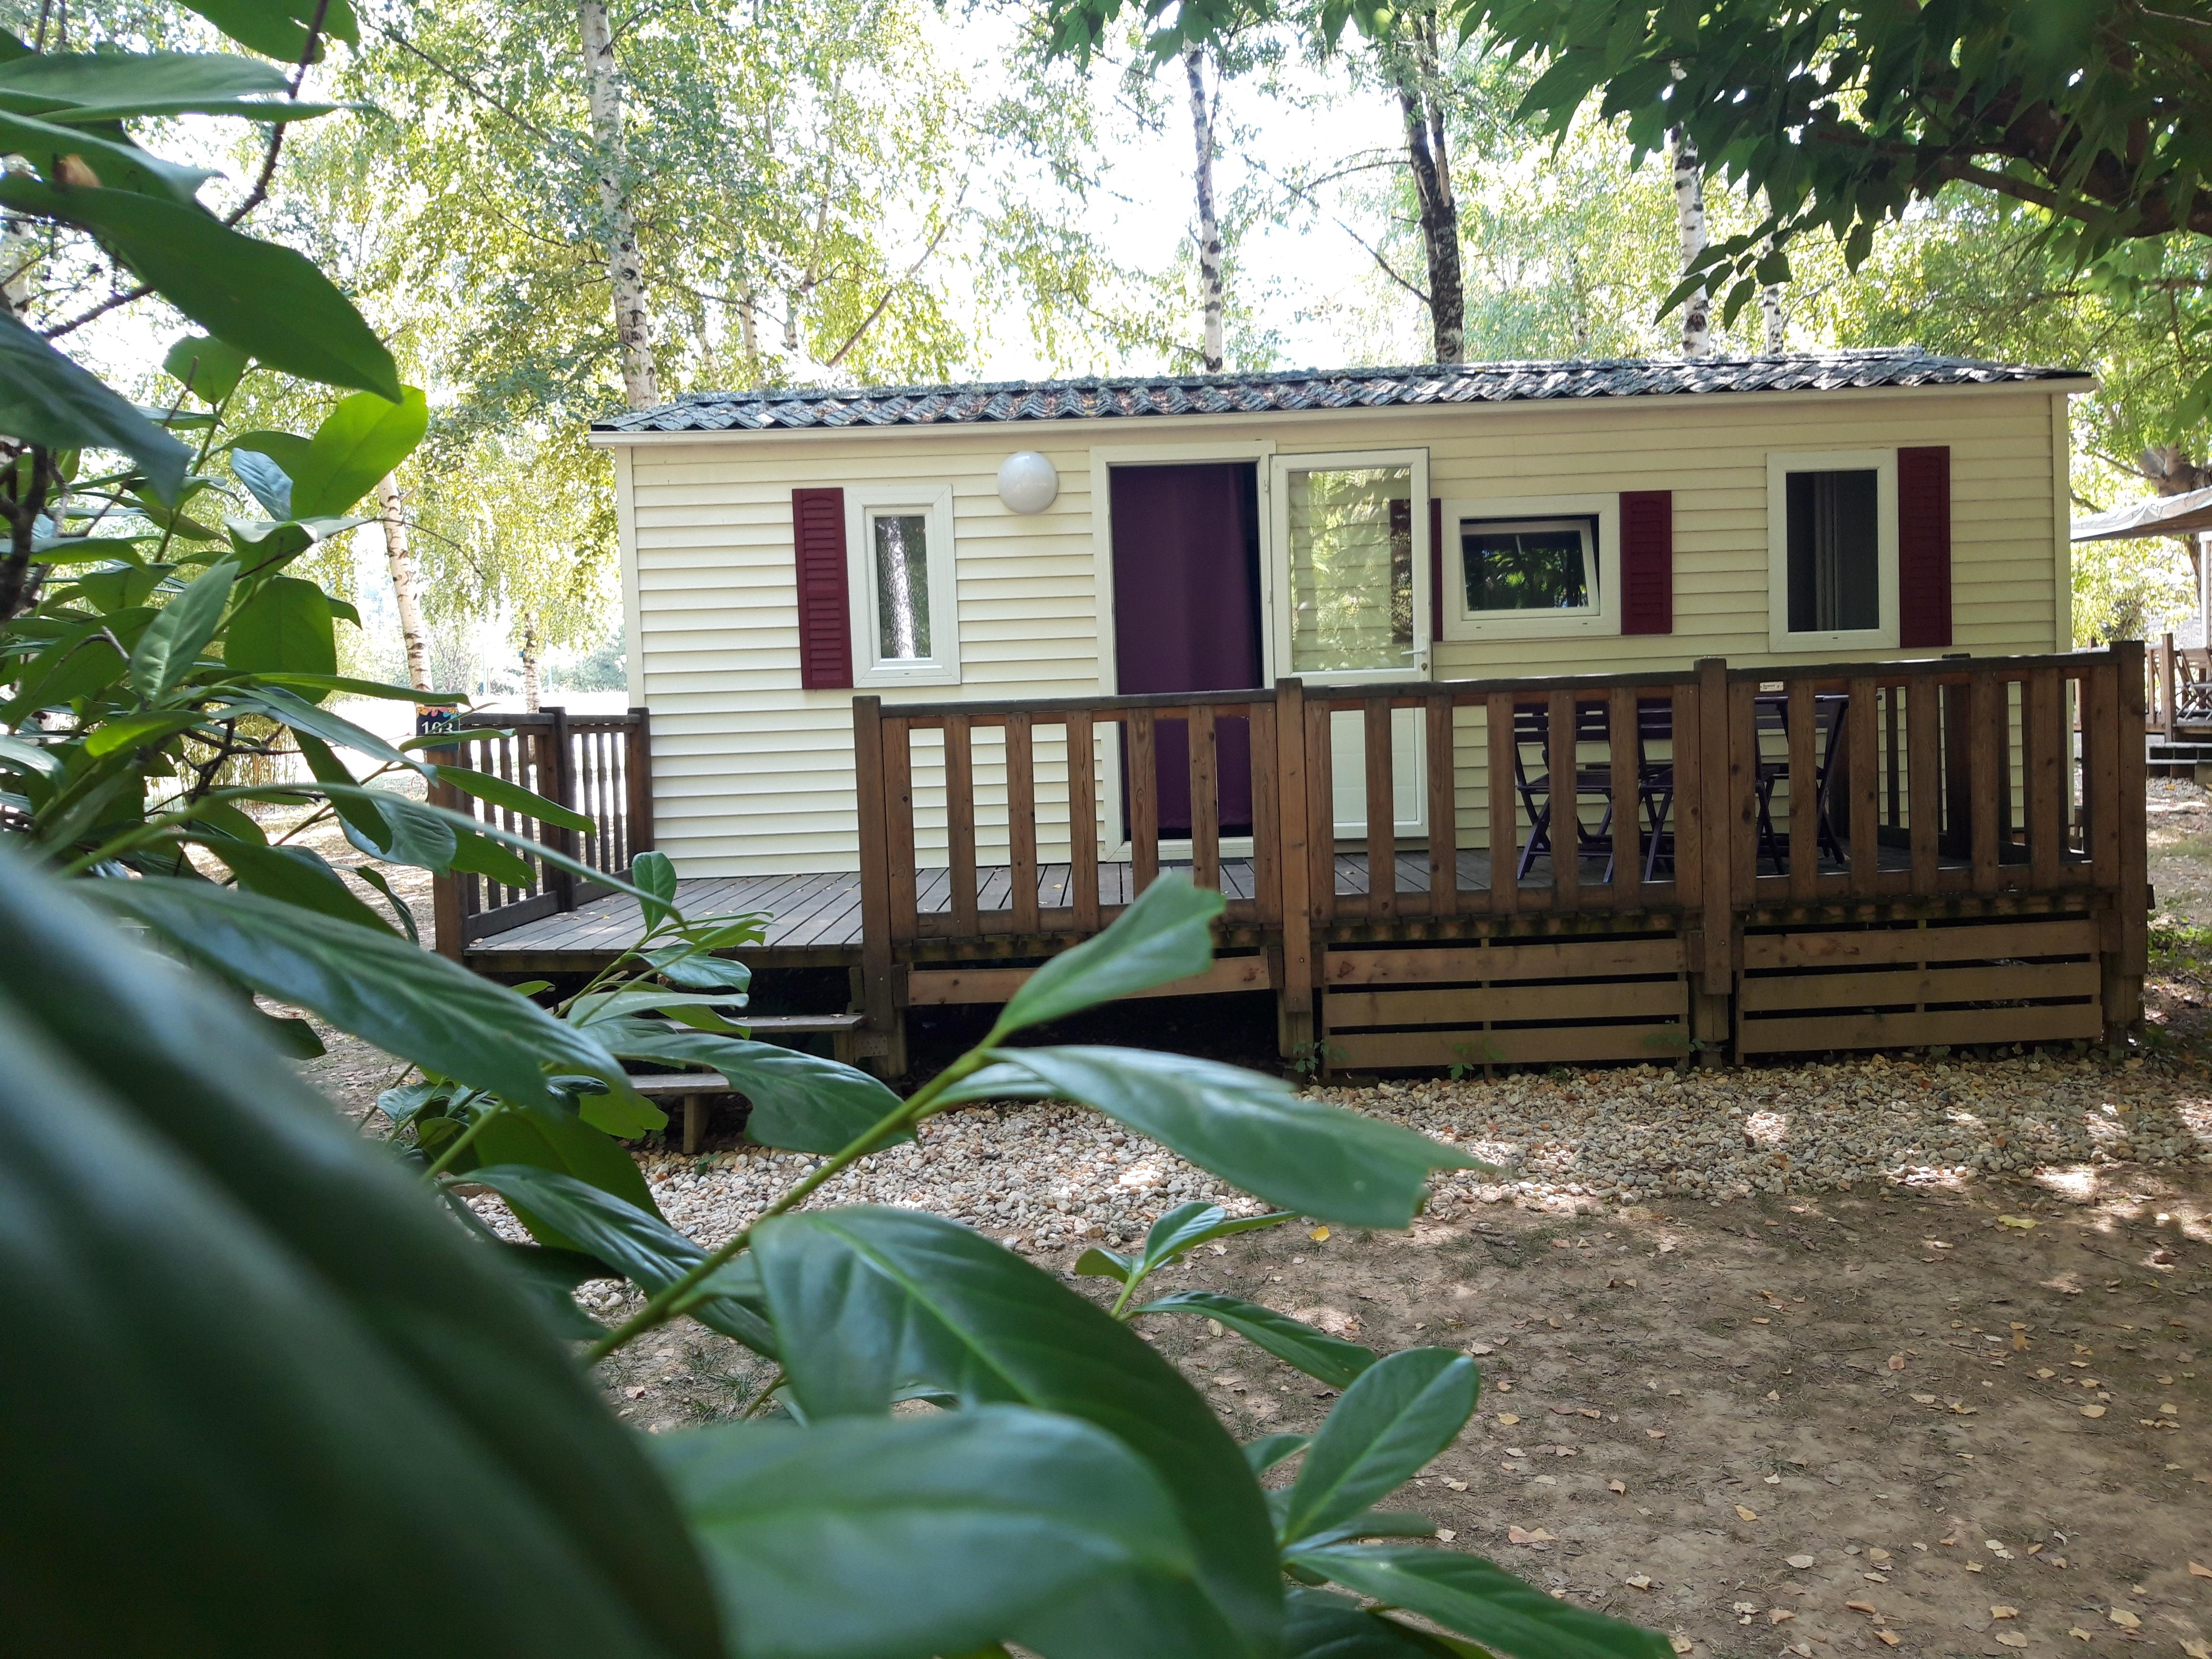 Location - Mobilhome Eco (2 Chambres) Grande Terrasse - Flower Camping Les Gorges de l'Aveyron